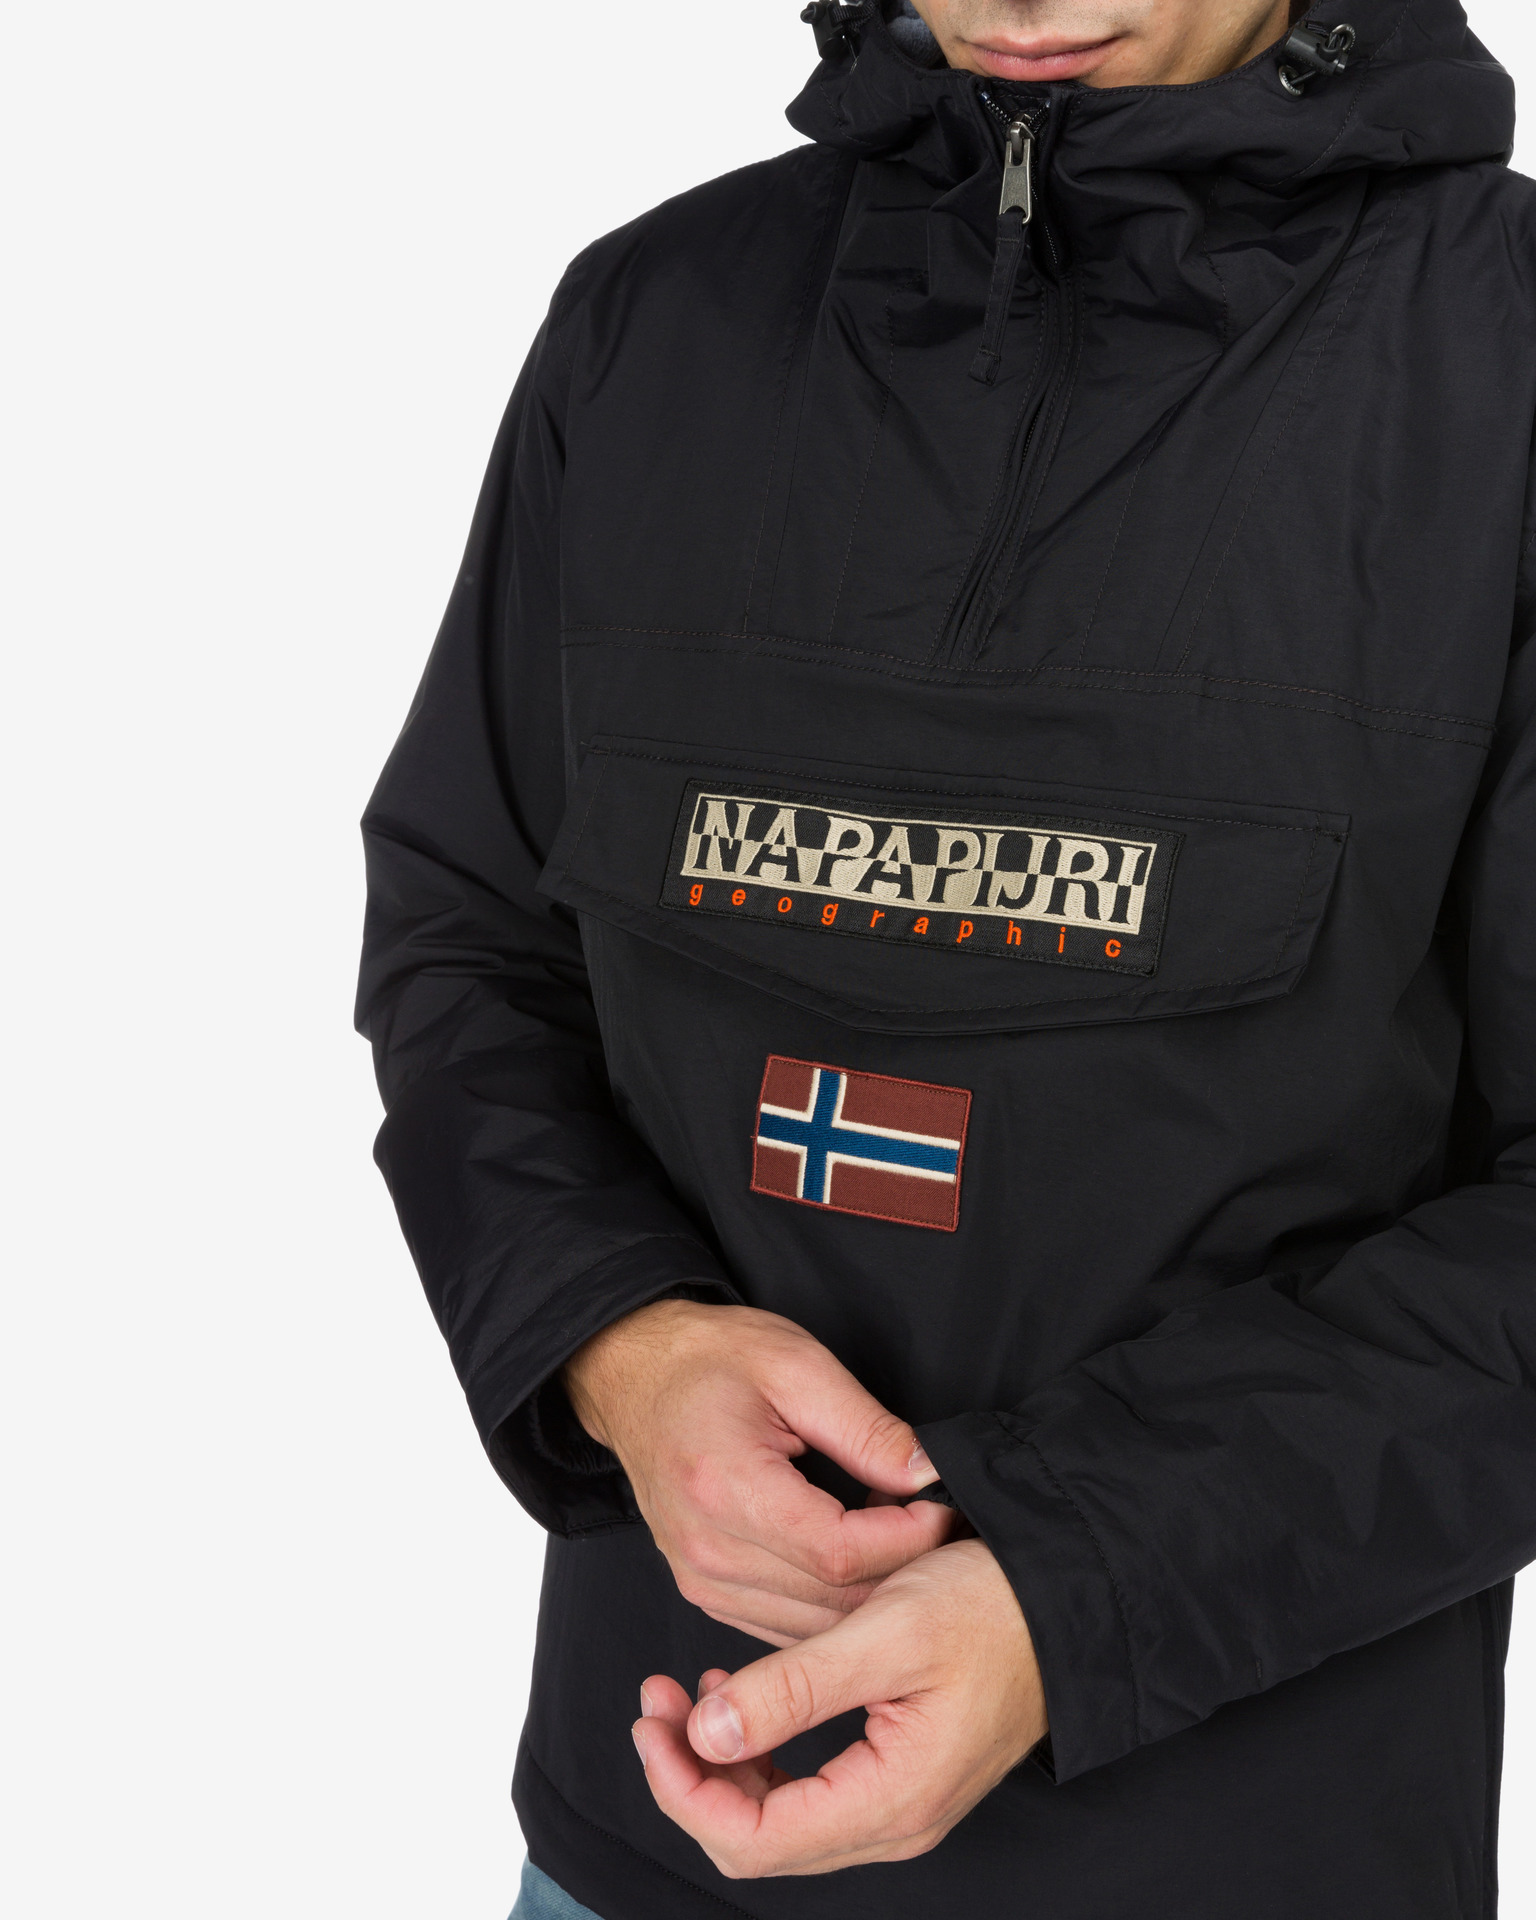 Napapijri Rainforest Winter Jacke | Bibloo.at